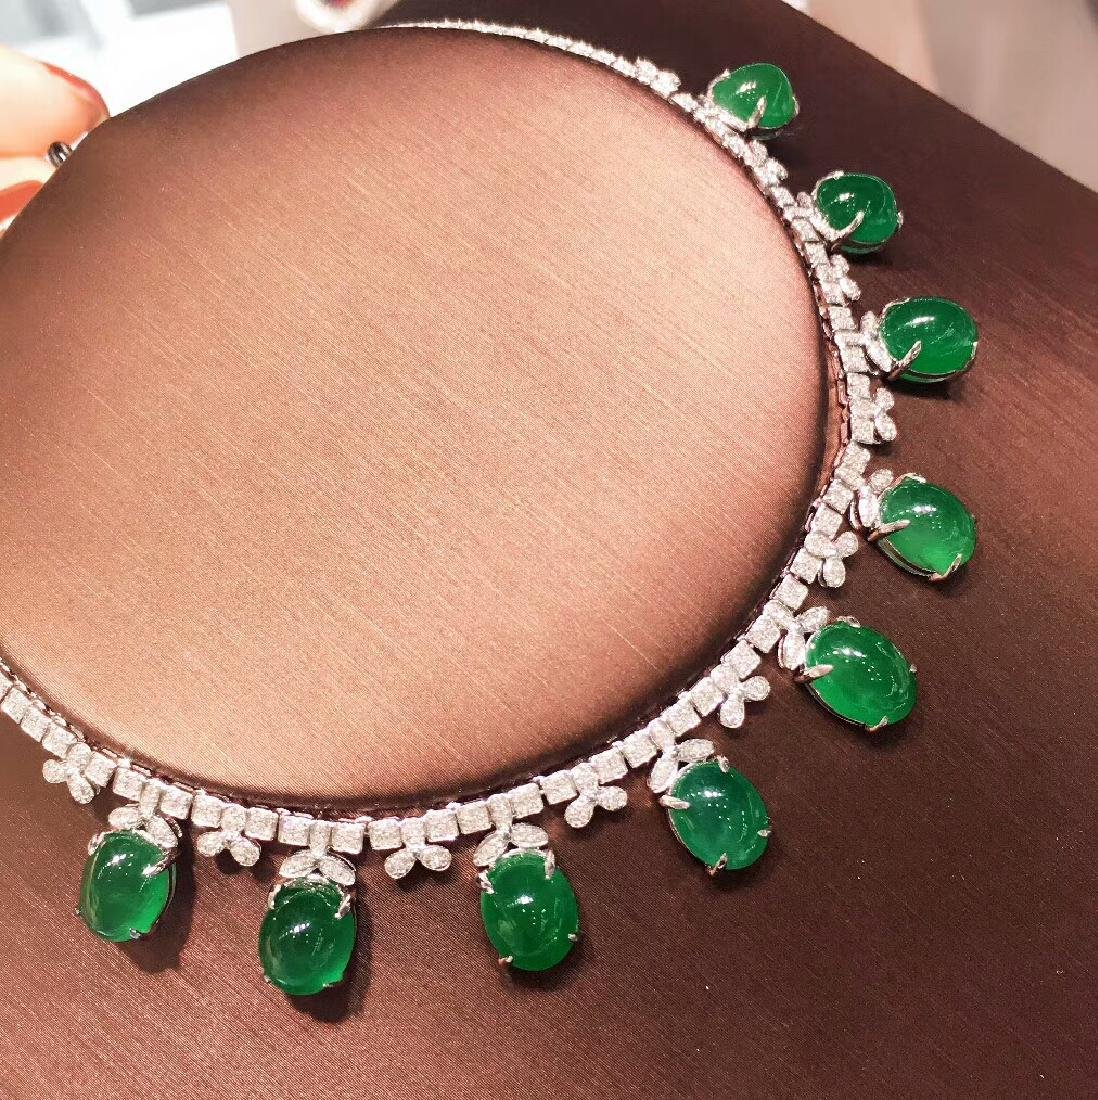 29.5ct Emerald Necklace in 18kt White Gold - 3